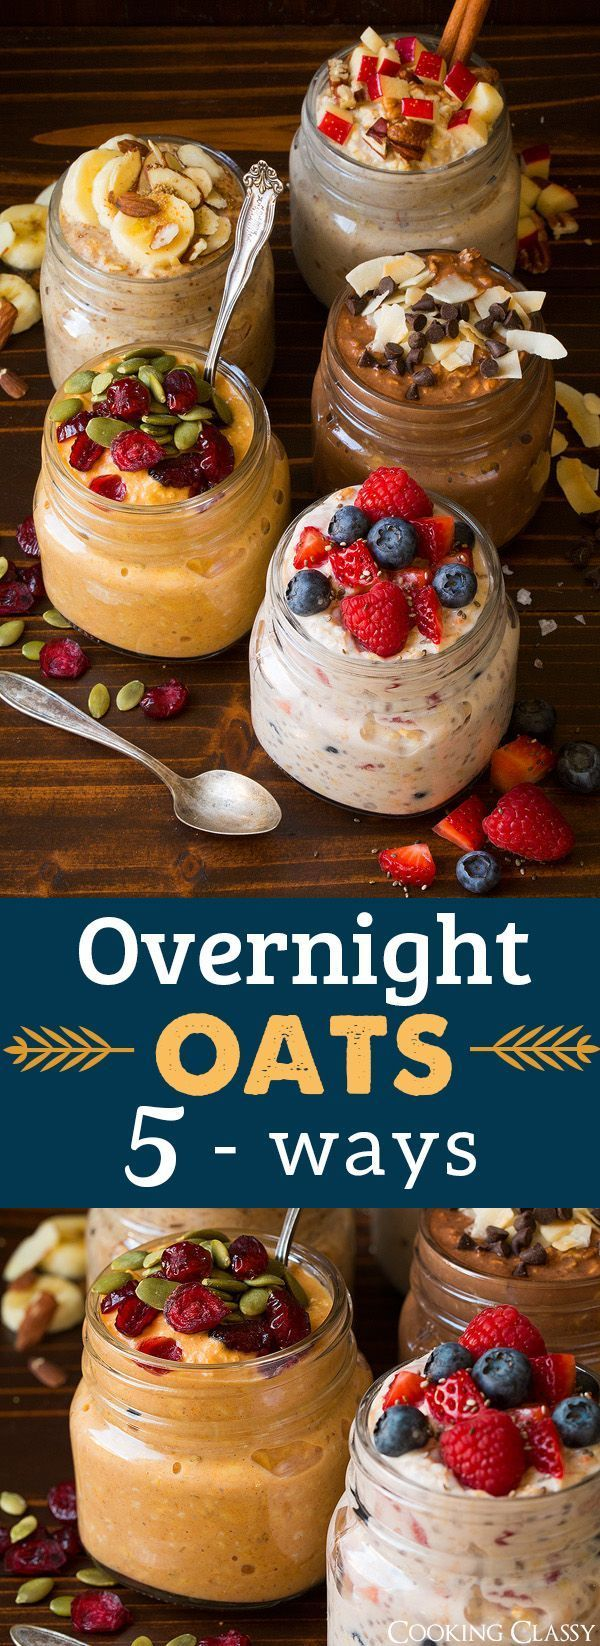 Overnight oats are such a brilliant breakfast solution. They can be prepared ahead of time, taken with you and eaten at your desk or enjoyed quickly before the school run. Totally versatile, you can add whatever you want to make them totally delicious and just for you. These are 5 great recipes that are well worth trying if you are looking for a healthy breakfast idea.